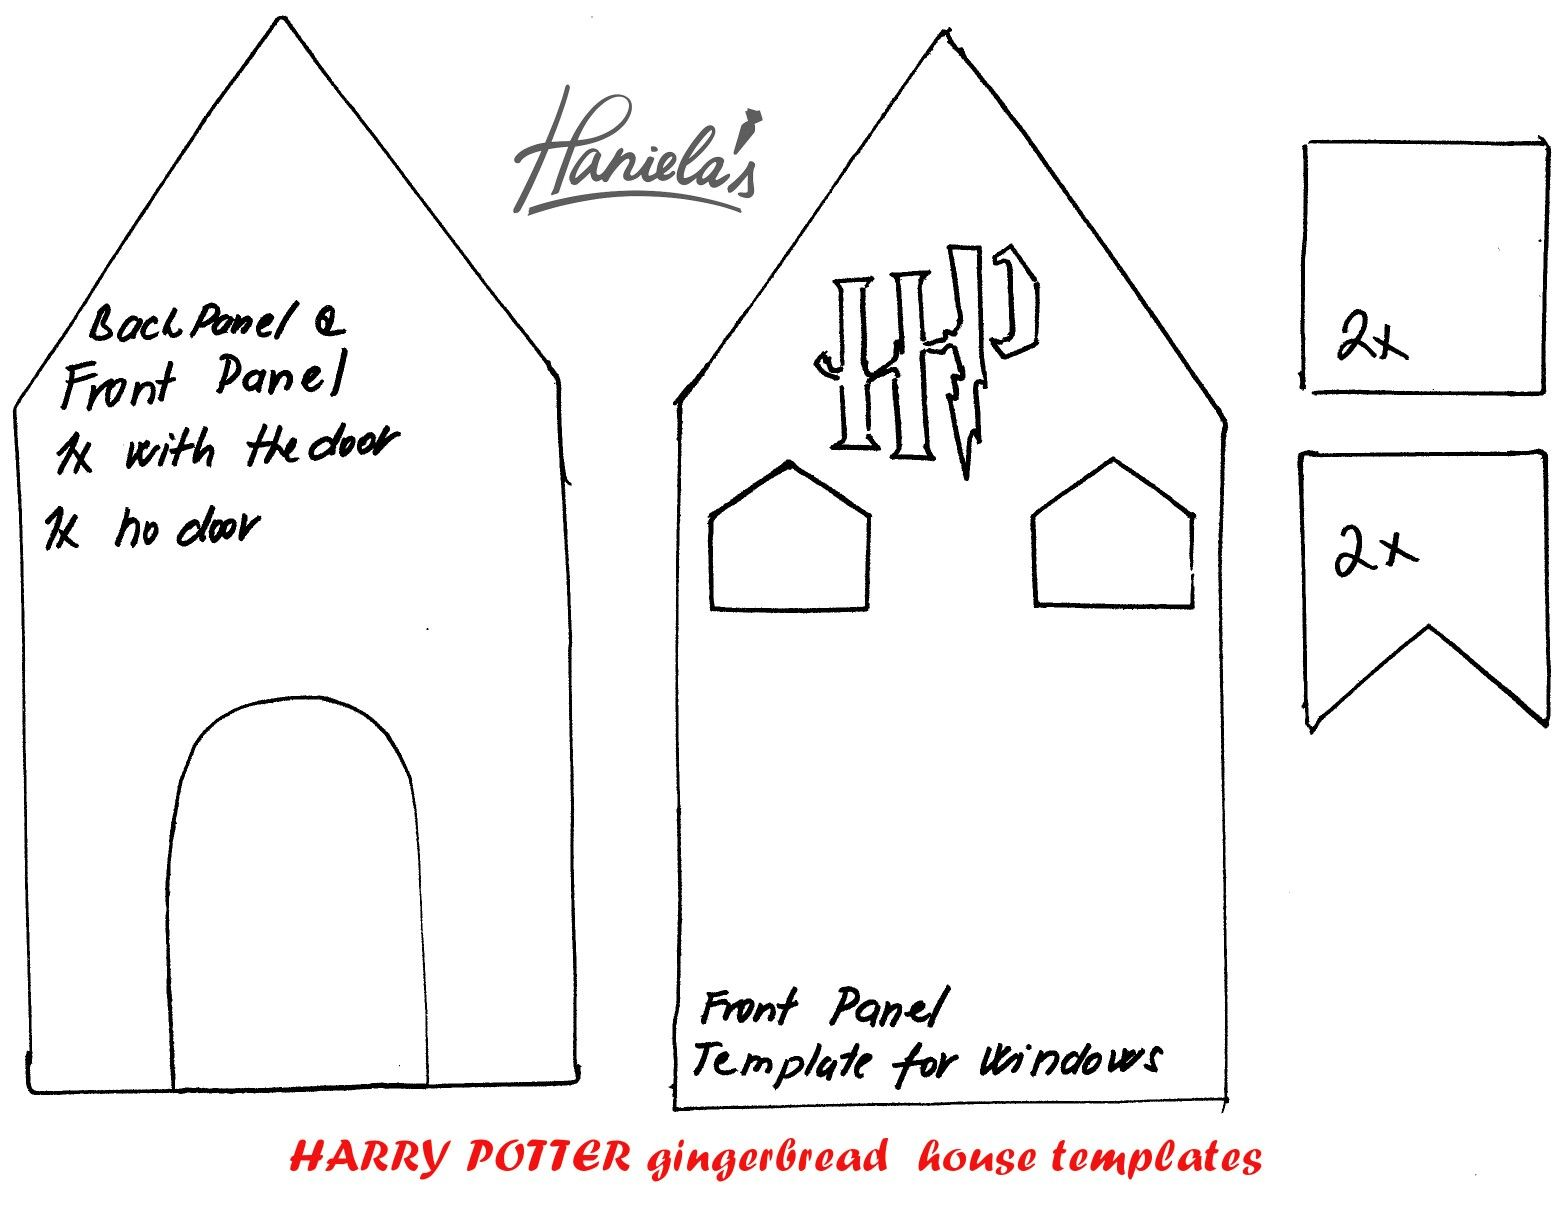 image relating to Printable Gingerbread House titled Hogwarts gingerbread home template 1 of 2 The Wizarding